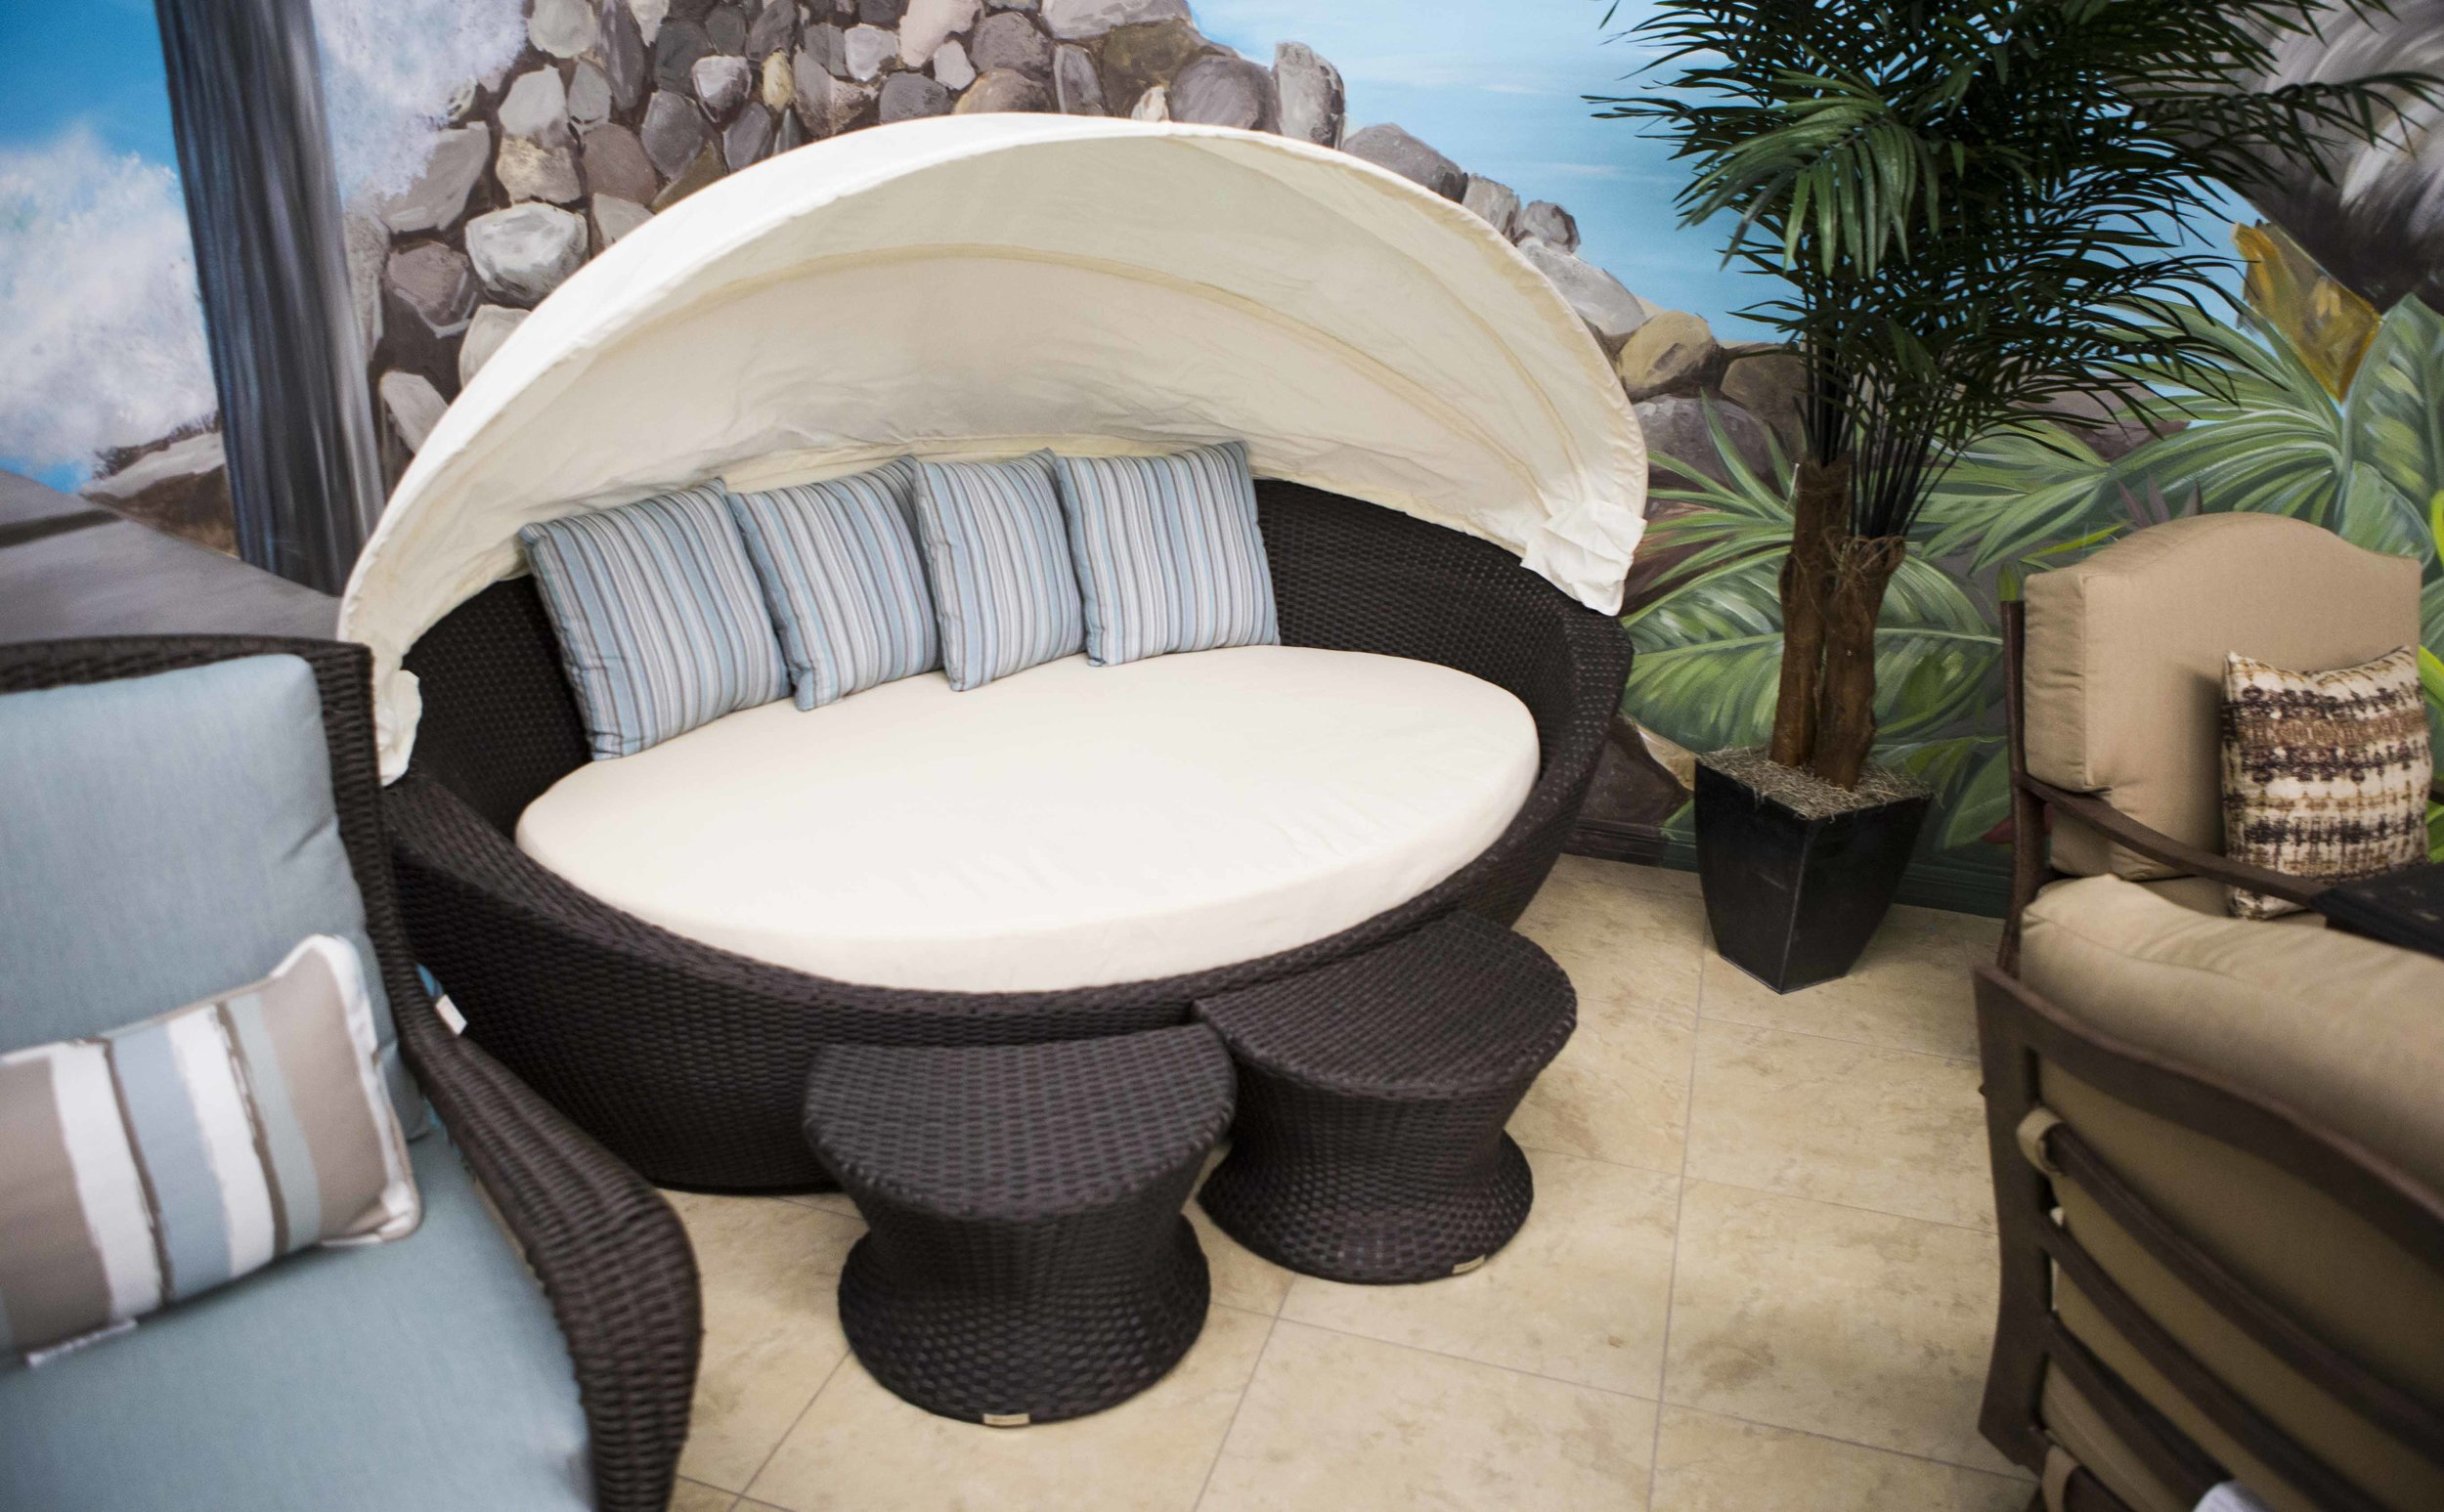 Patio Outlet Pics_13.jpg